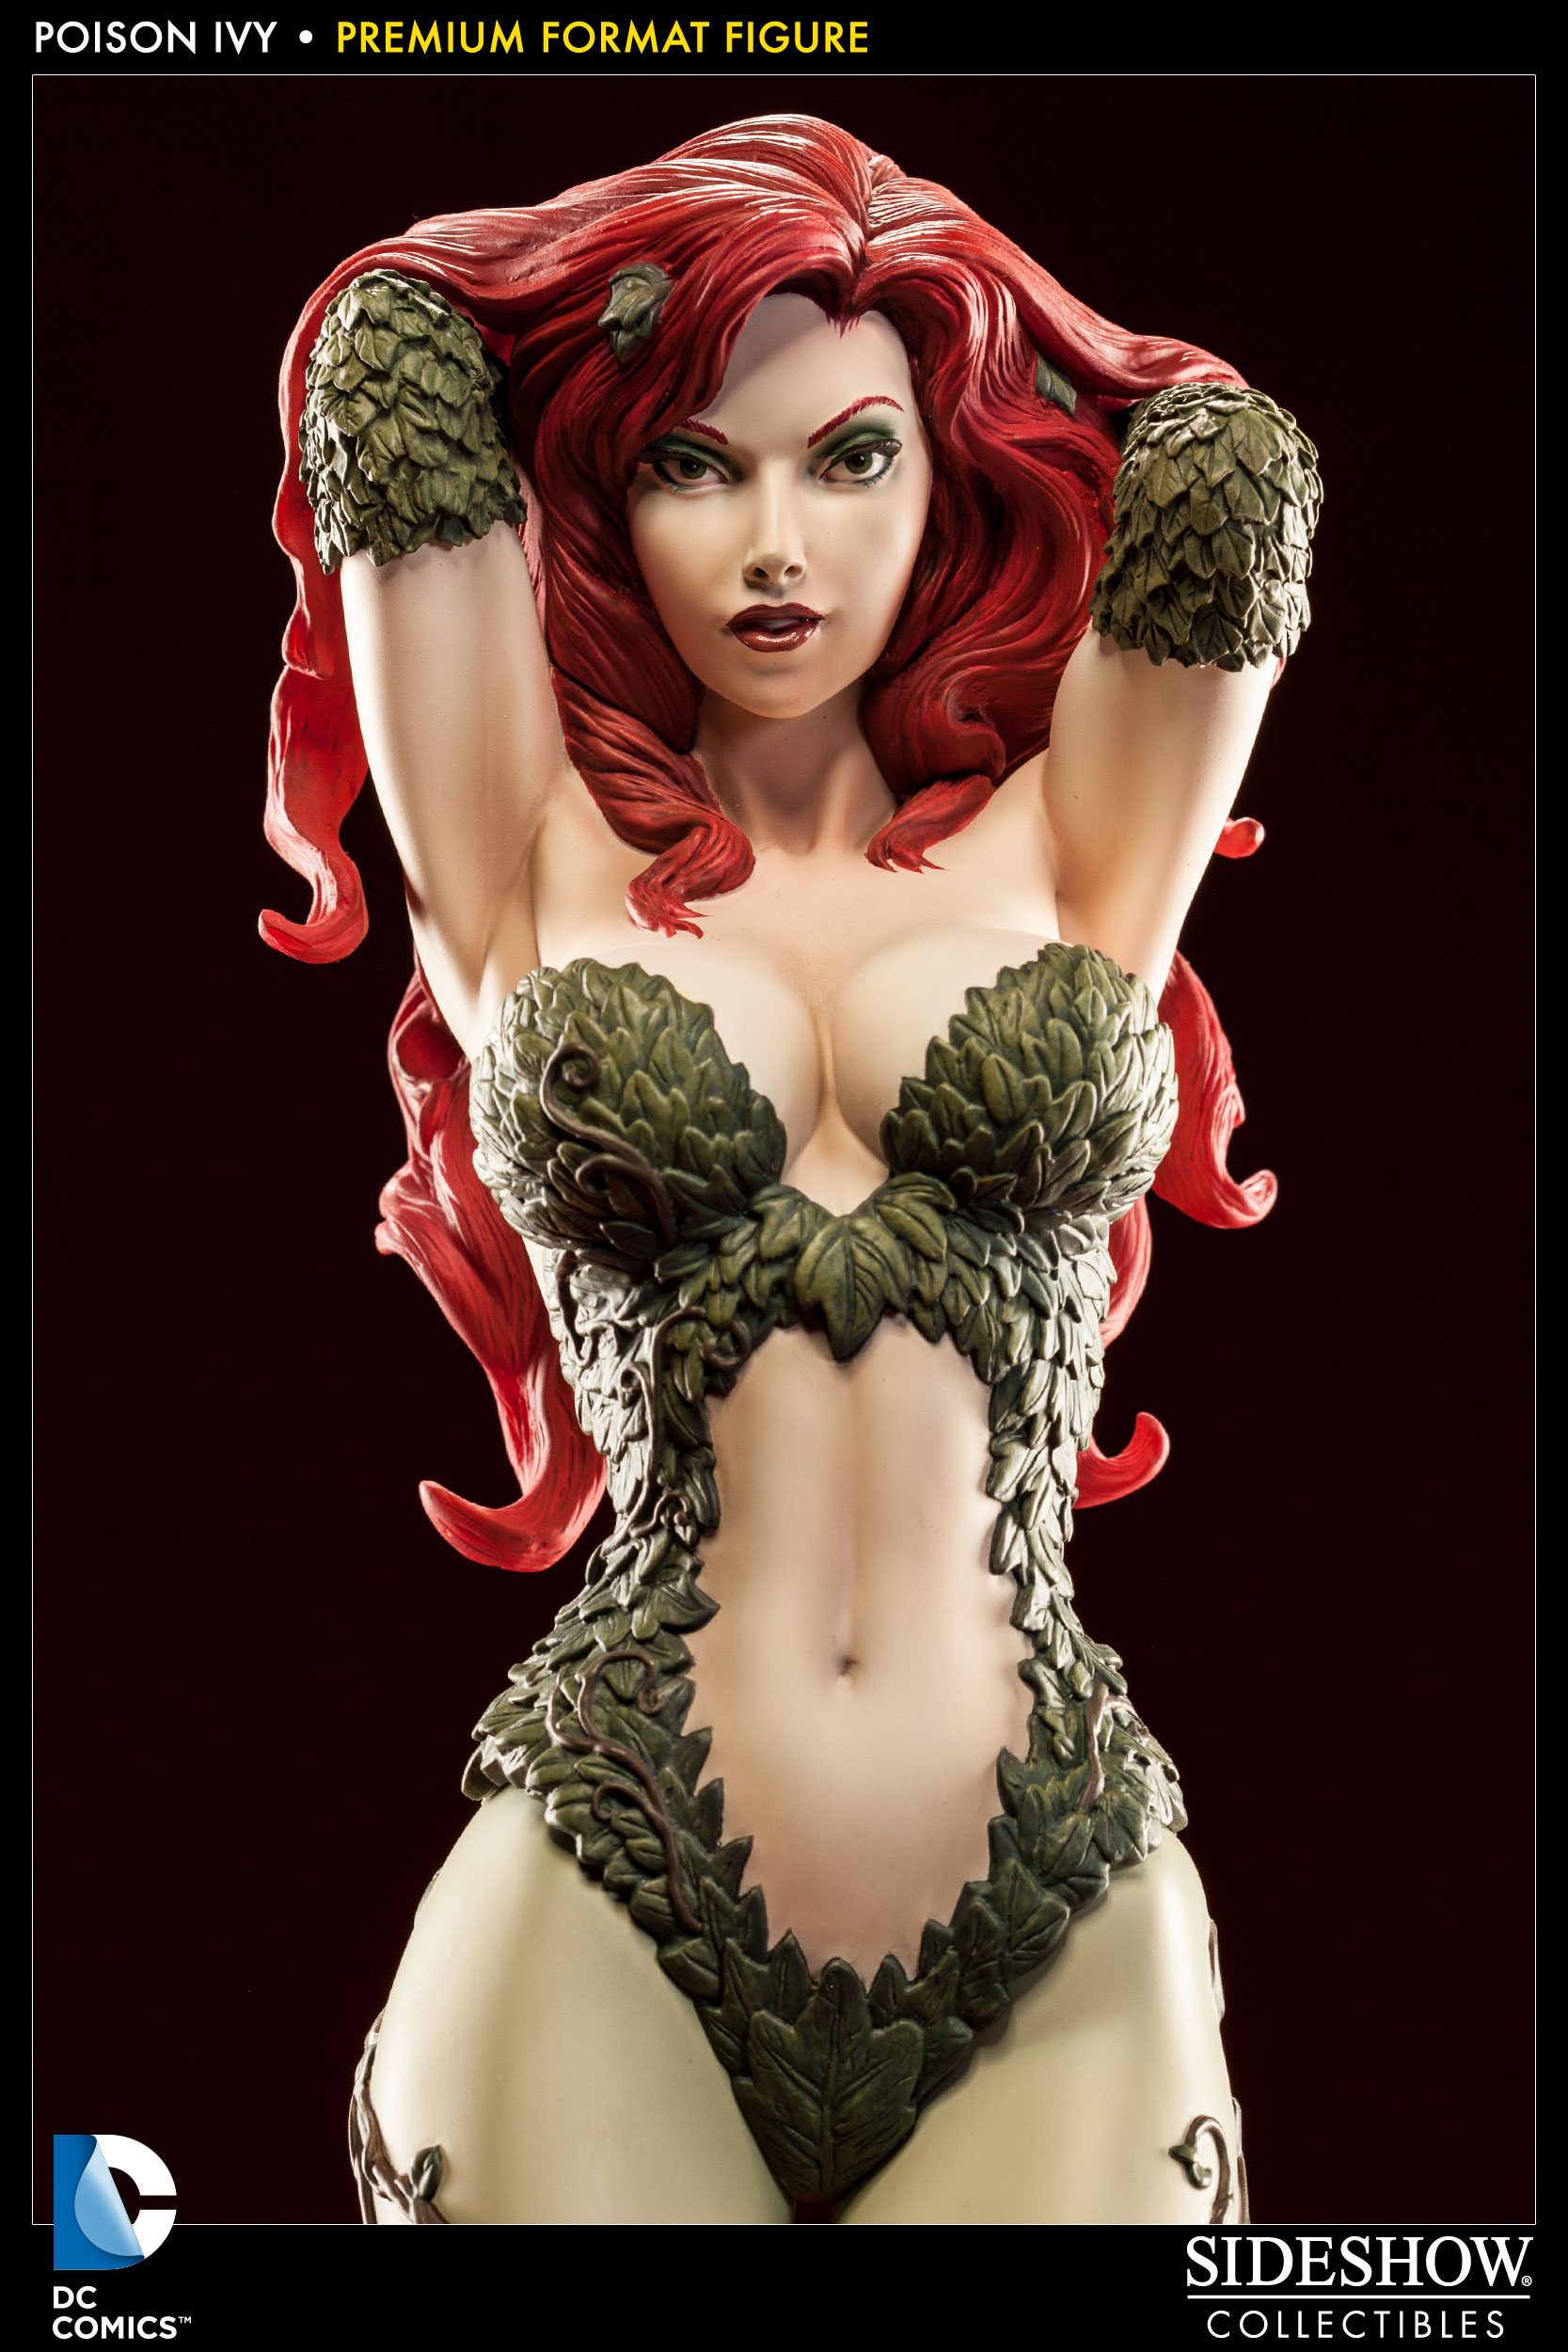 [Sideshow] Thor- The Dark World - Premium Format Figure - Página 5 Sideshow-collectibles-premium-format-poison-ivy-02